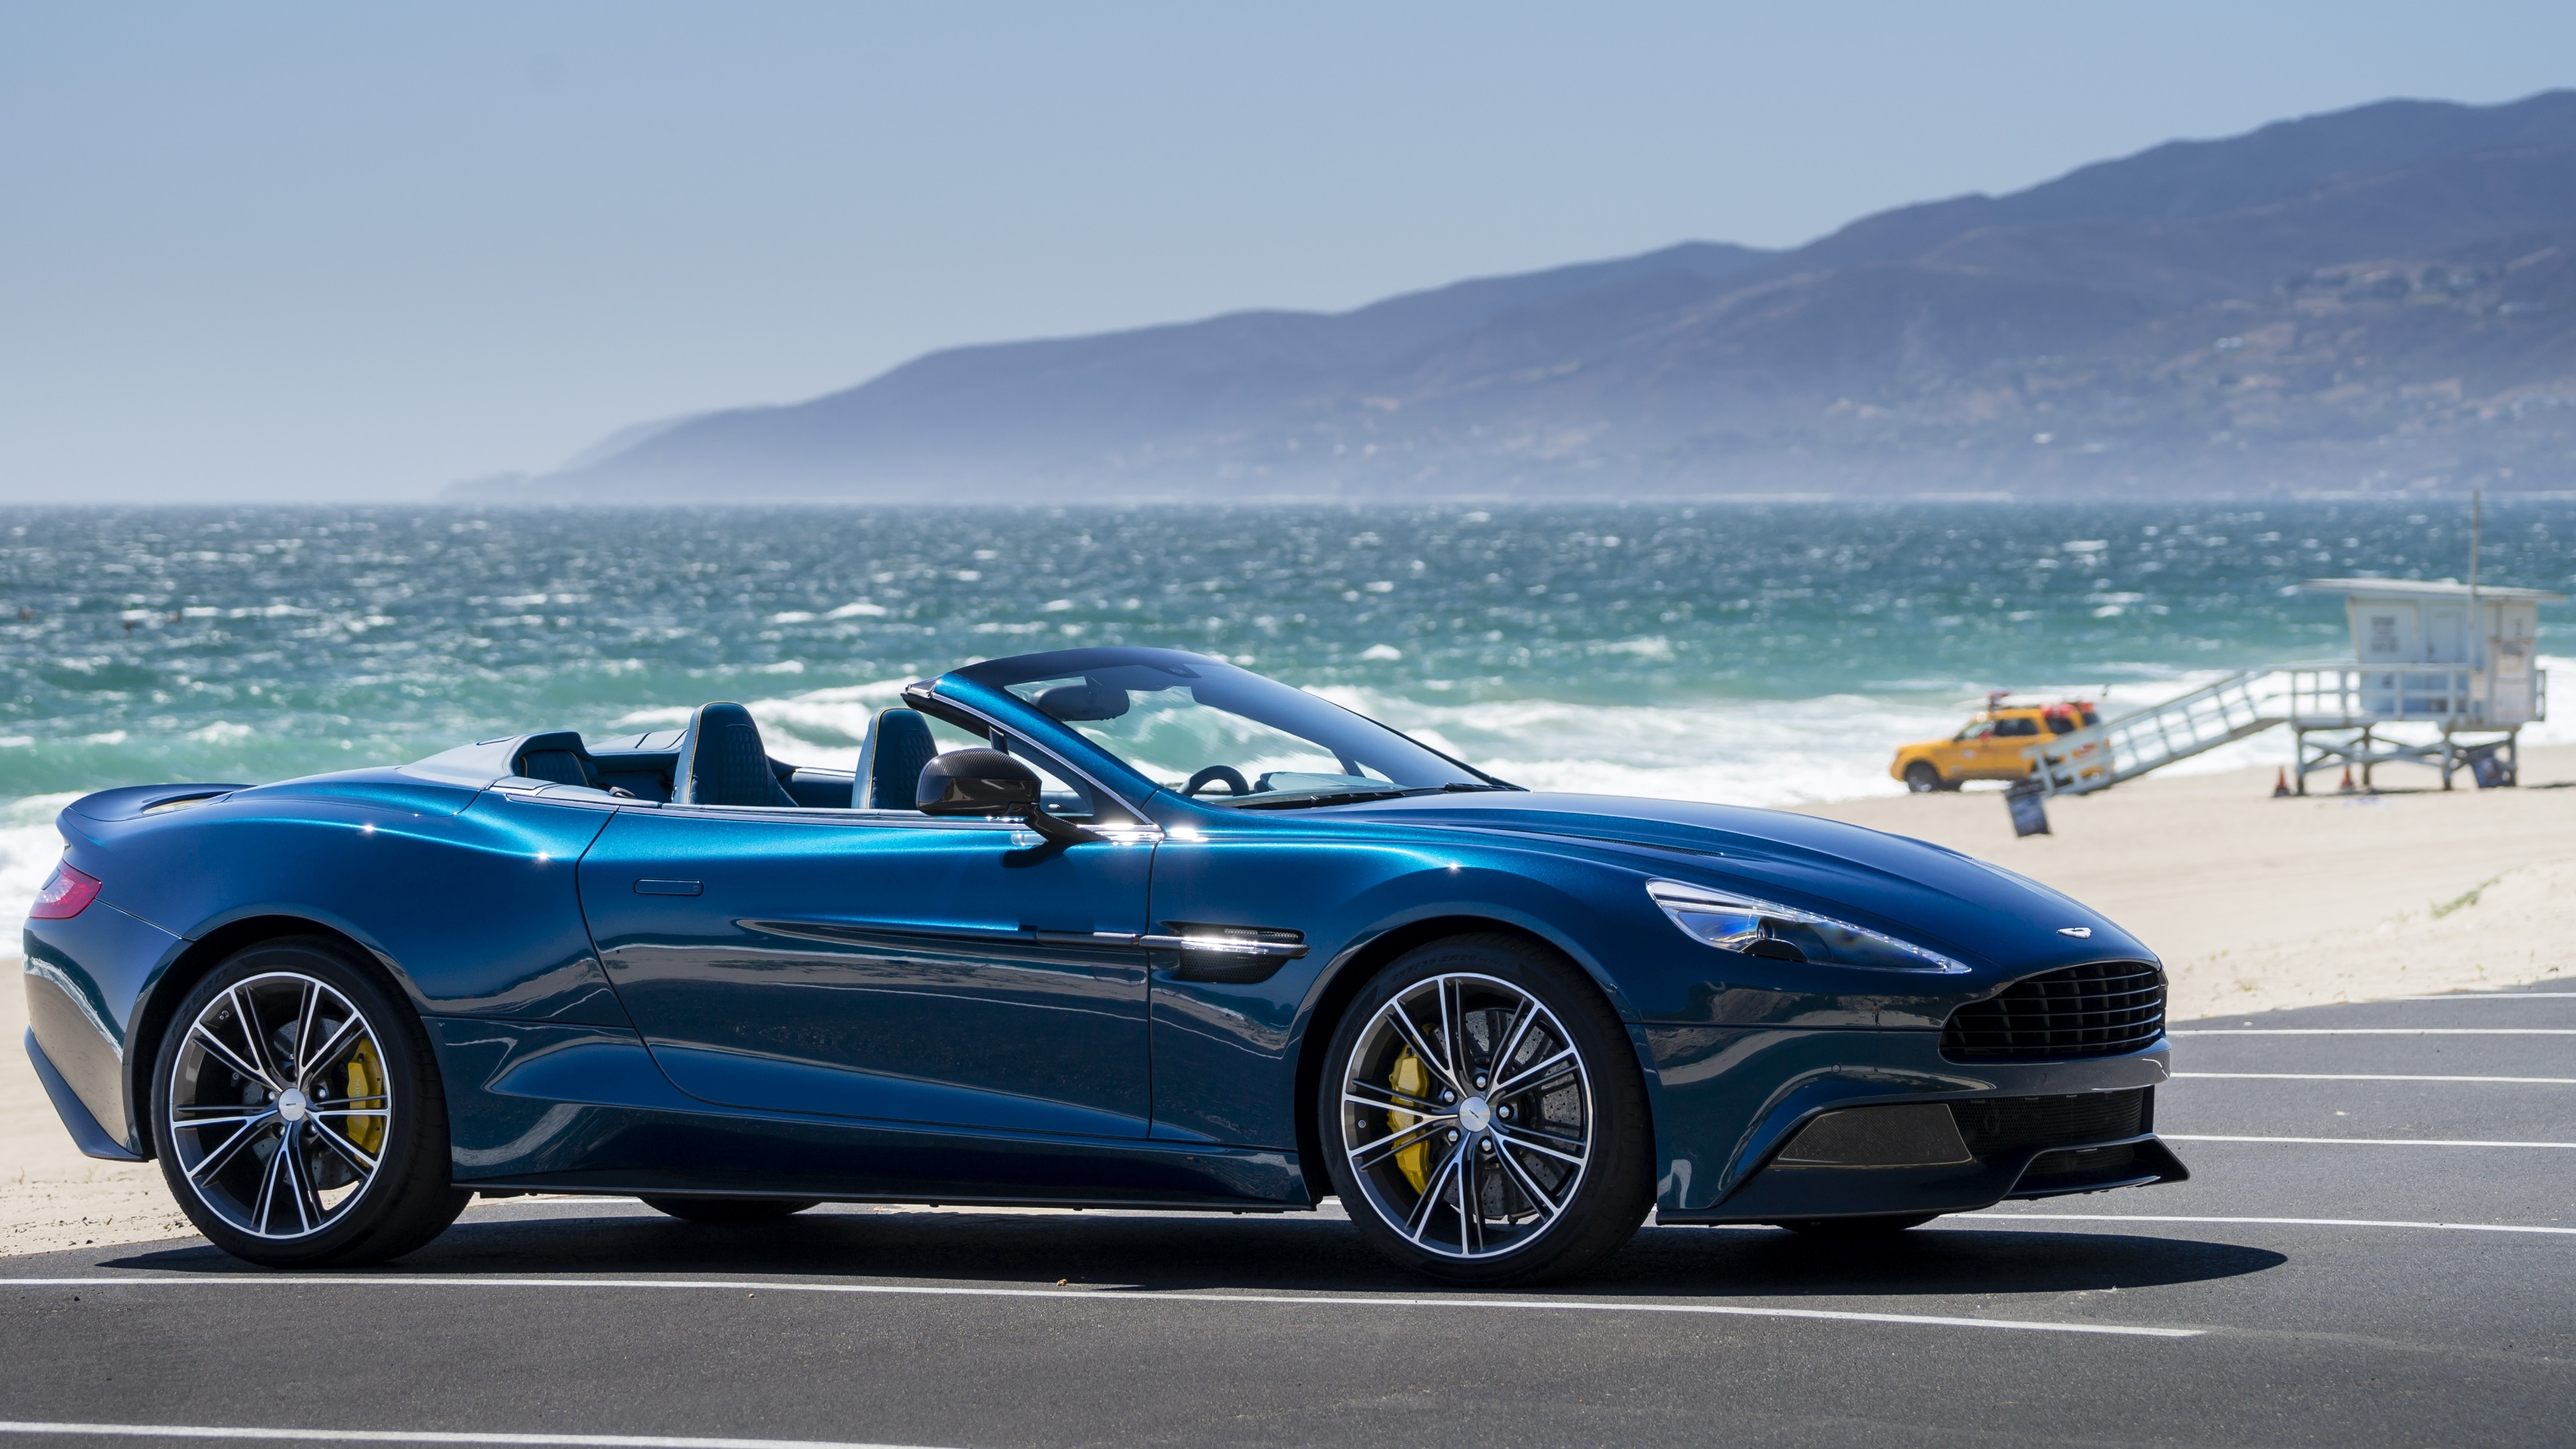 59 Aston Martin Vanquish HD Wallpapers Background Images 3840x2160